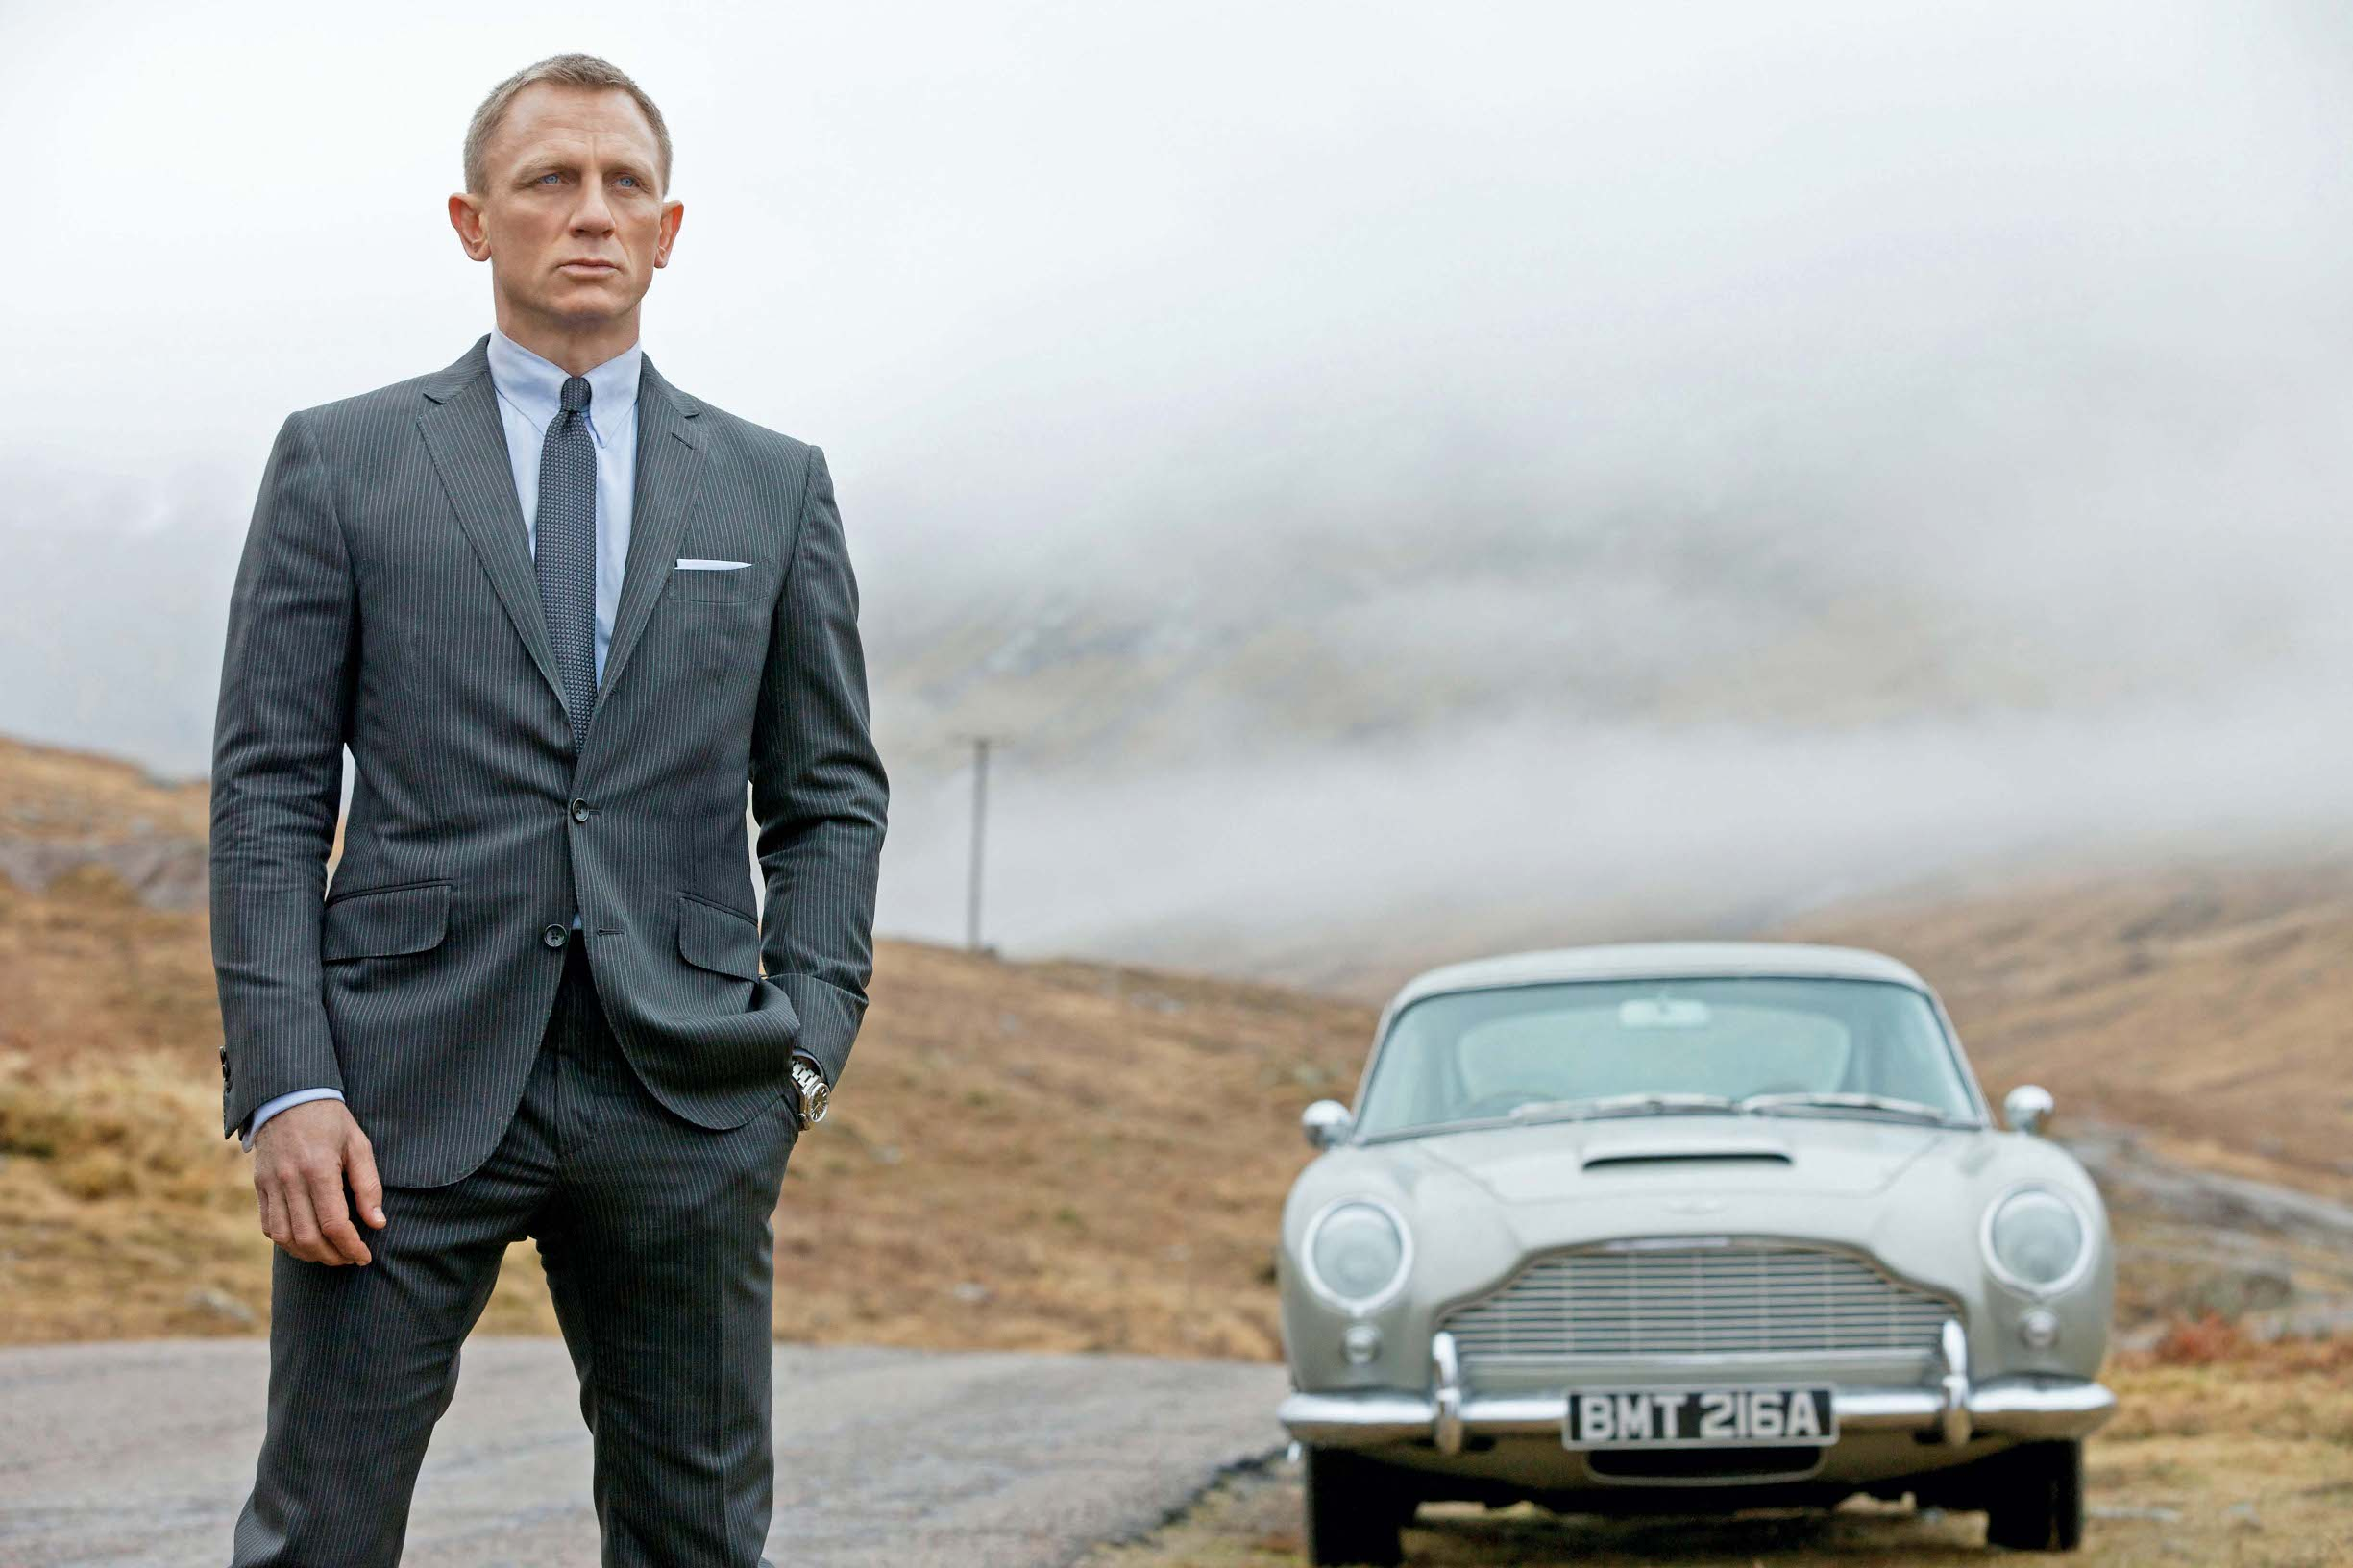 SKYFALL, Daniel Craig as James Bond, 2012. ph: Francois Duhamel/©Columbia Pictures/courtesy Everett Collection